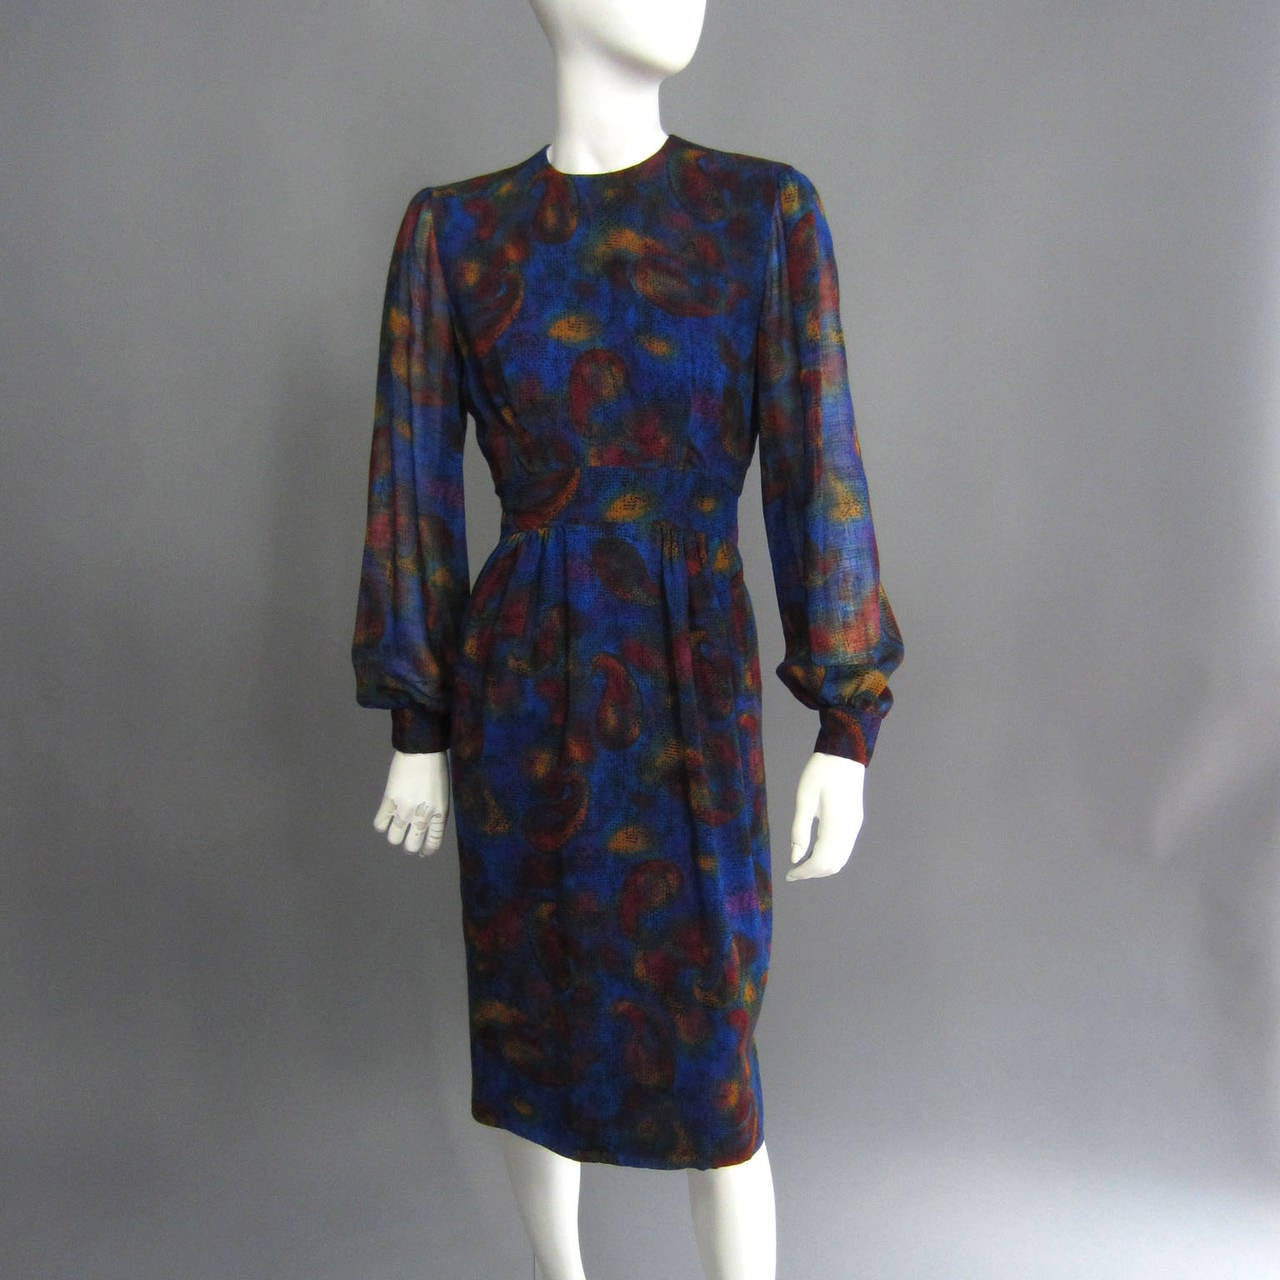 PAULINE TRIGERE Paisley Print Cocktail Dress In Excellent Condition For Sale In New York, NY